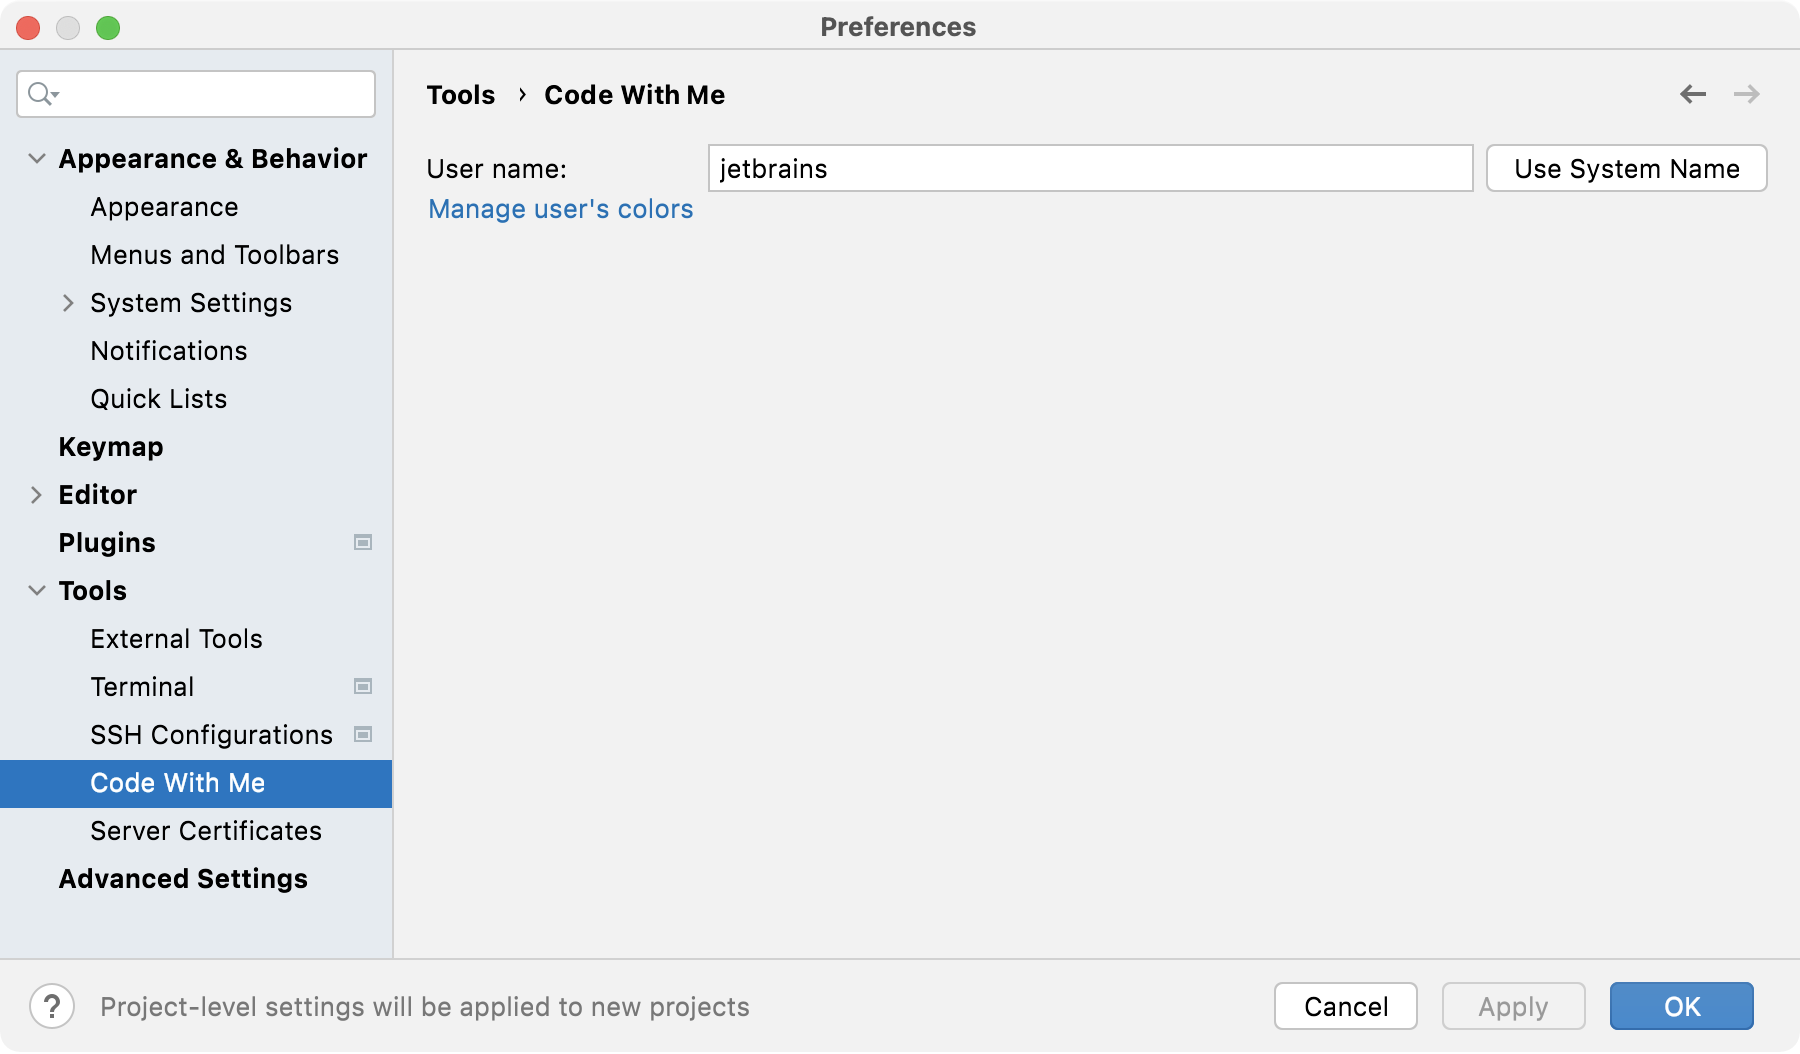 the Code With Me settings